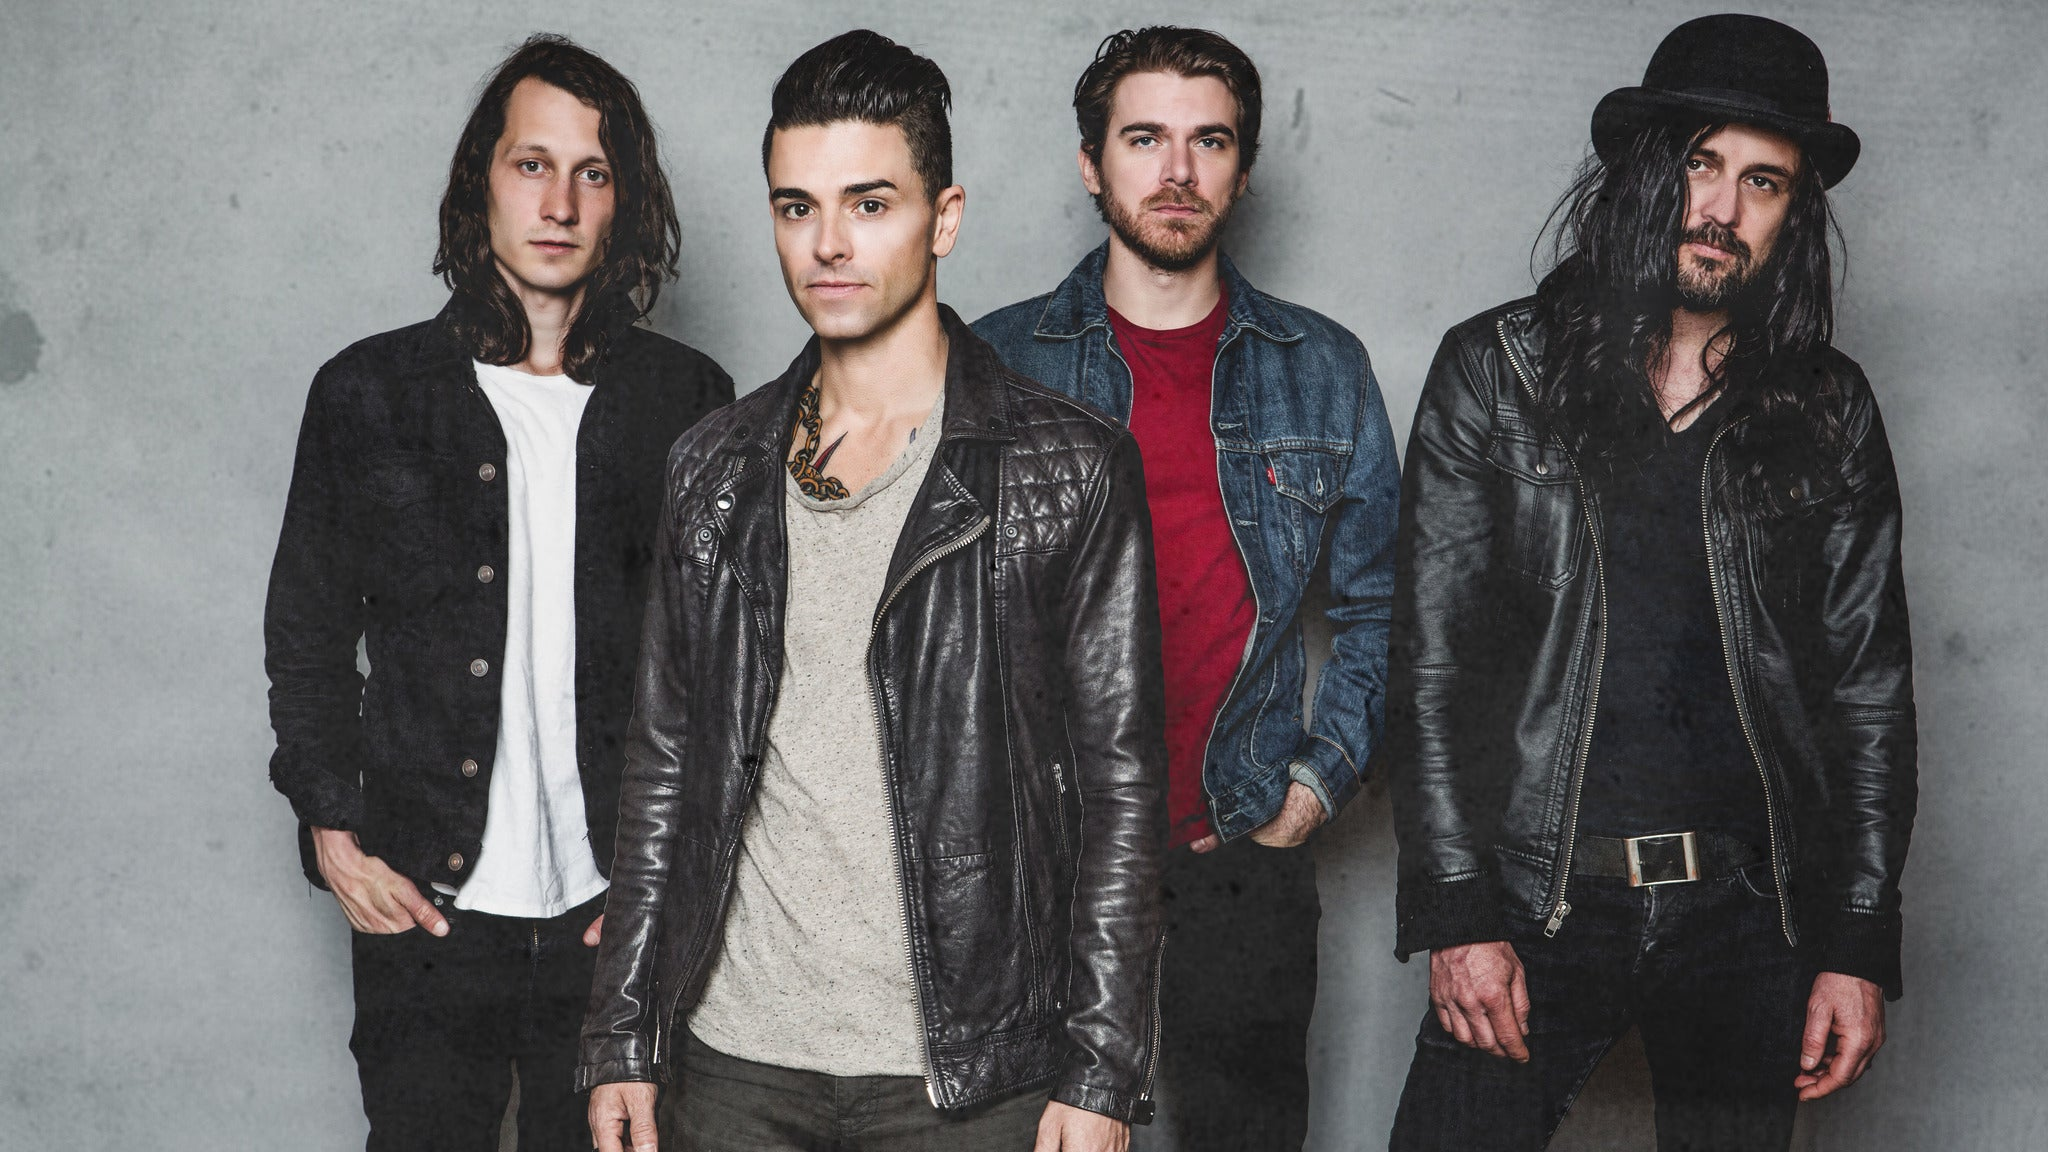 Dashboard Confessional with The All-American Rejects